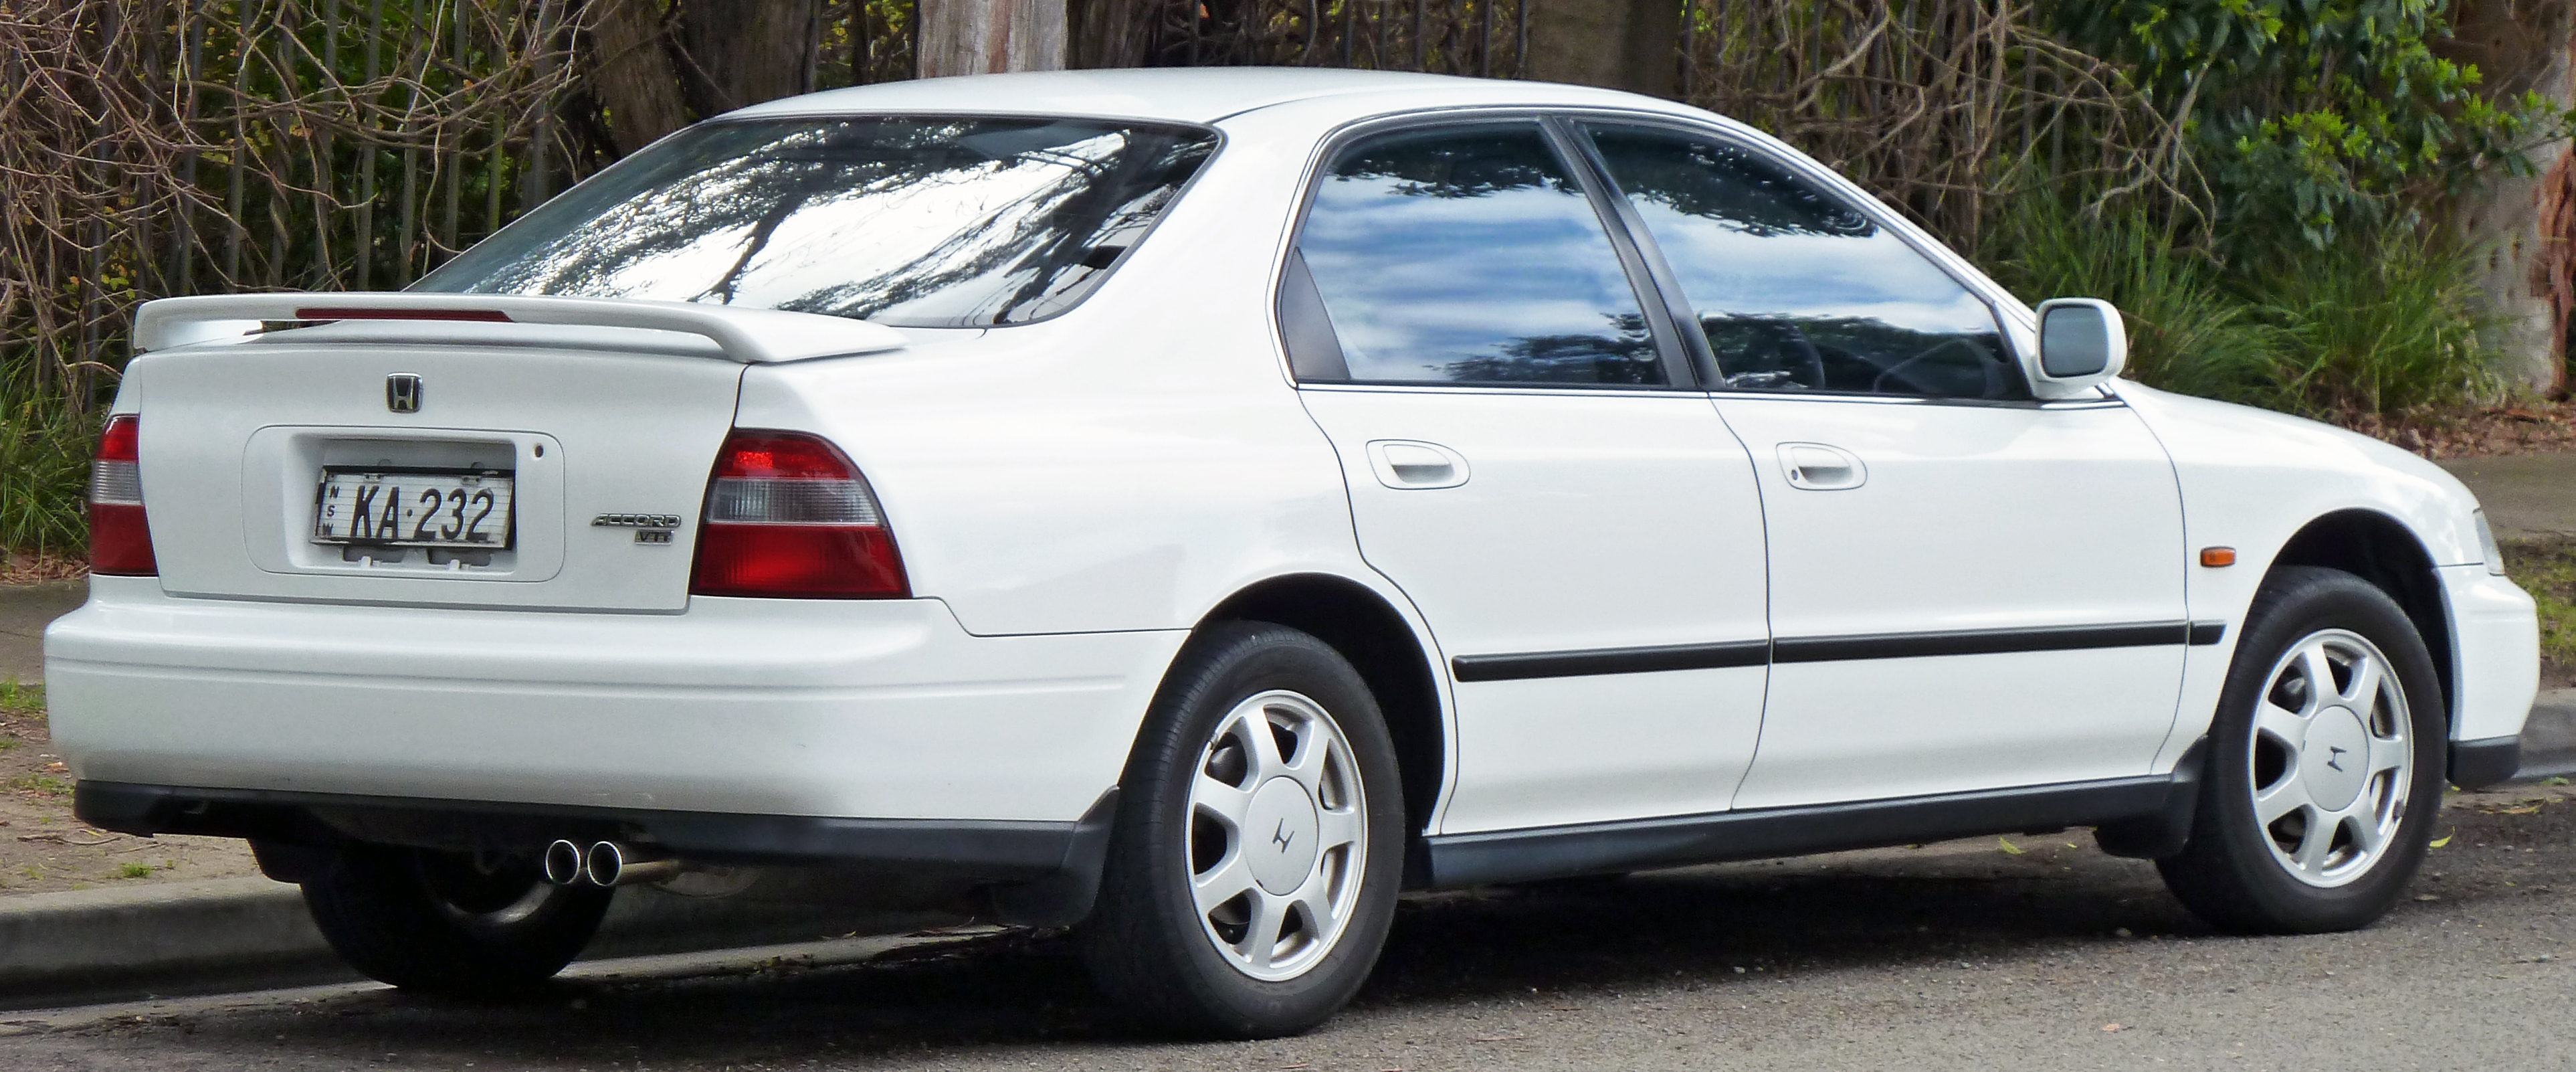 1995 Honda Accord #10